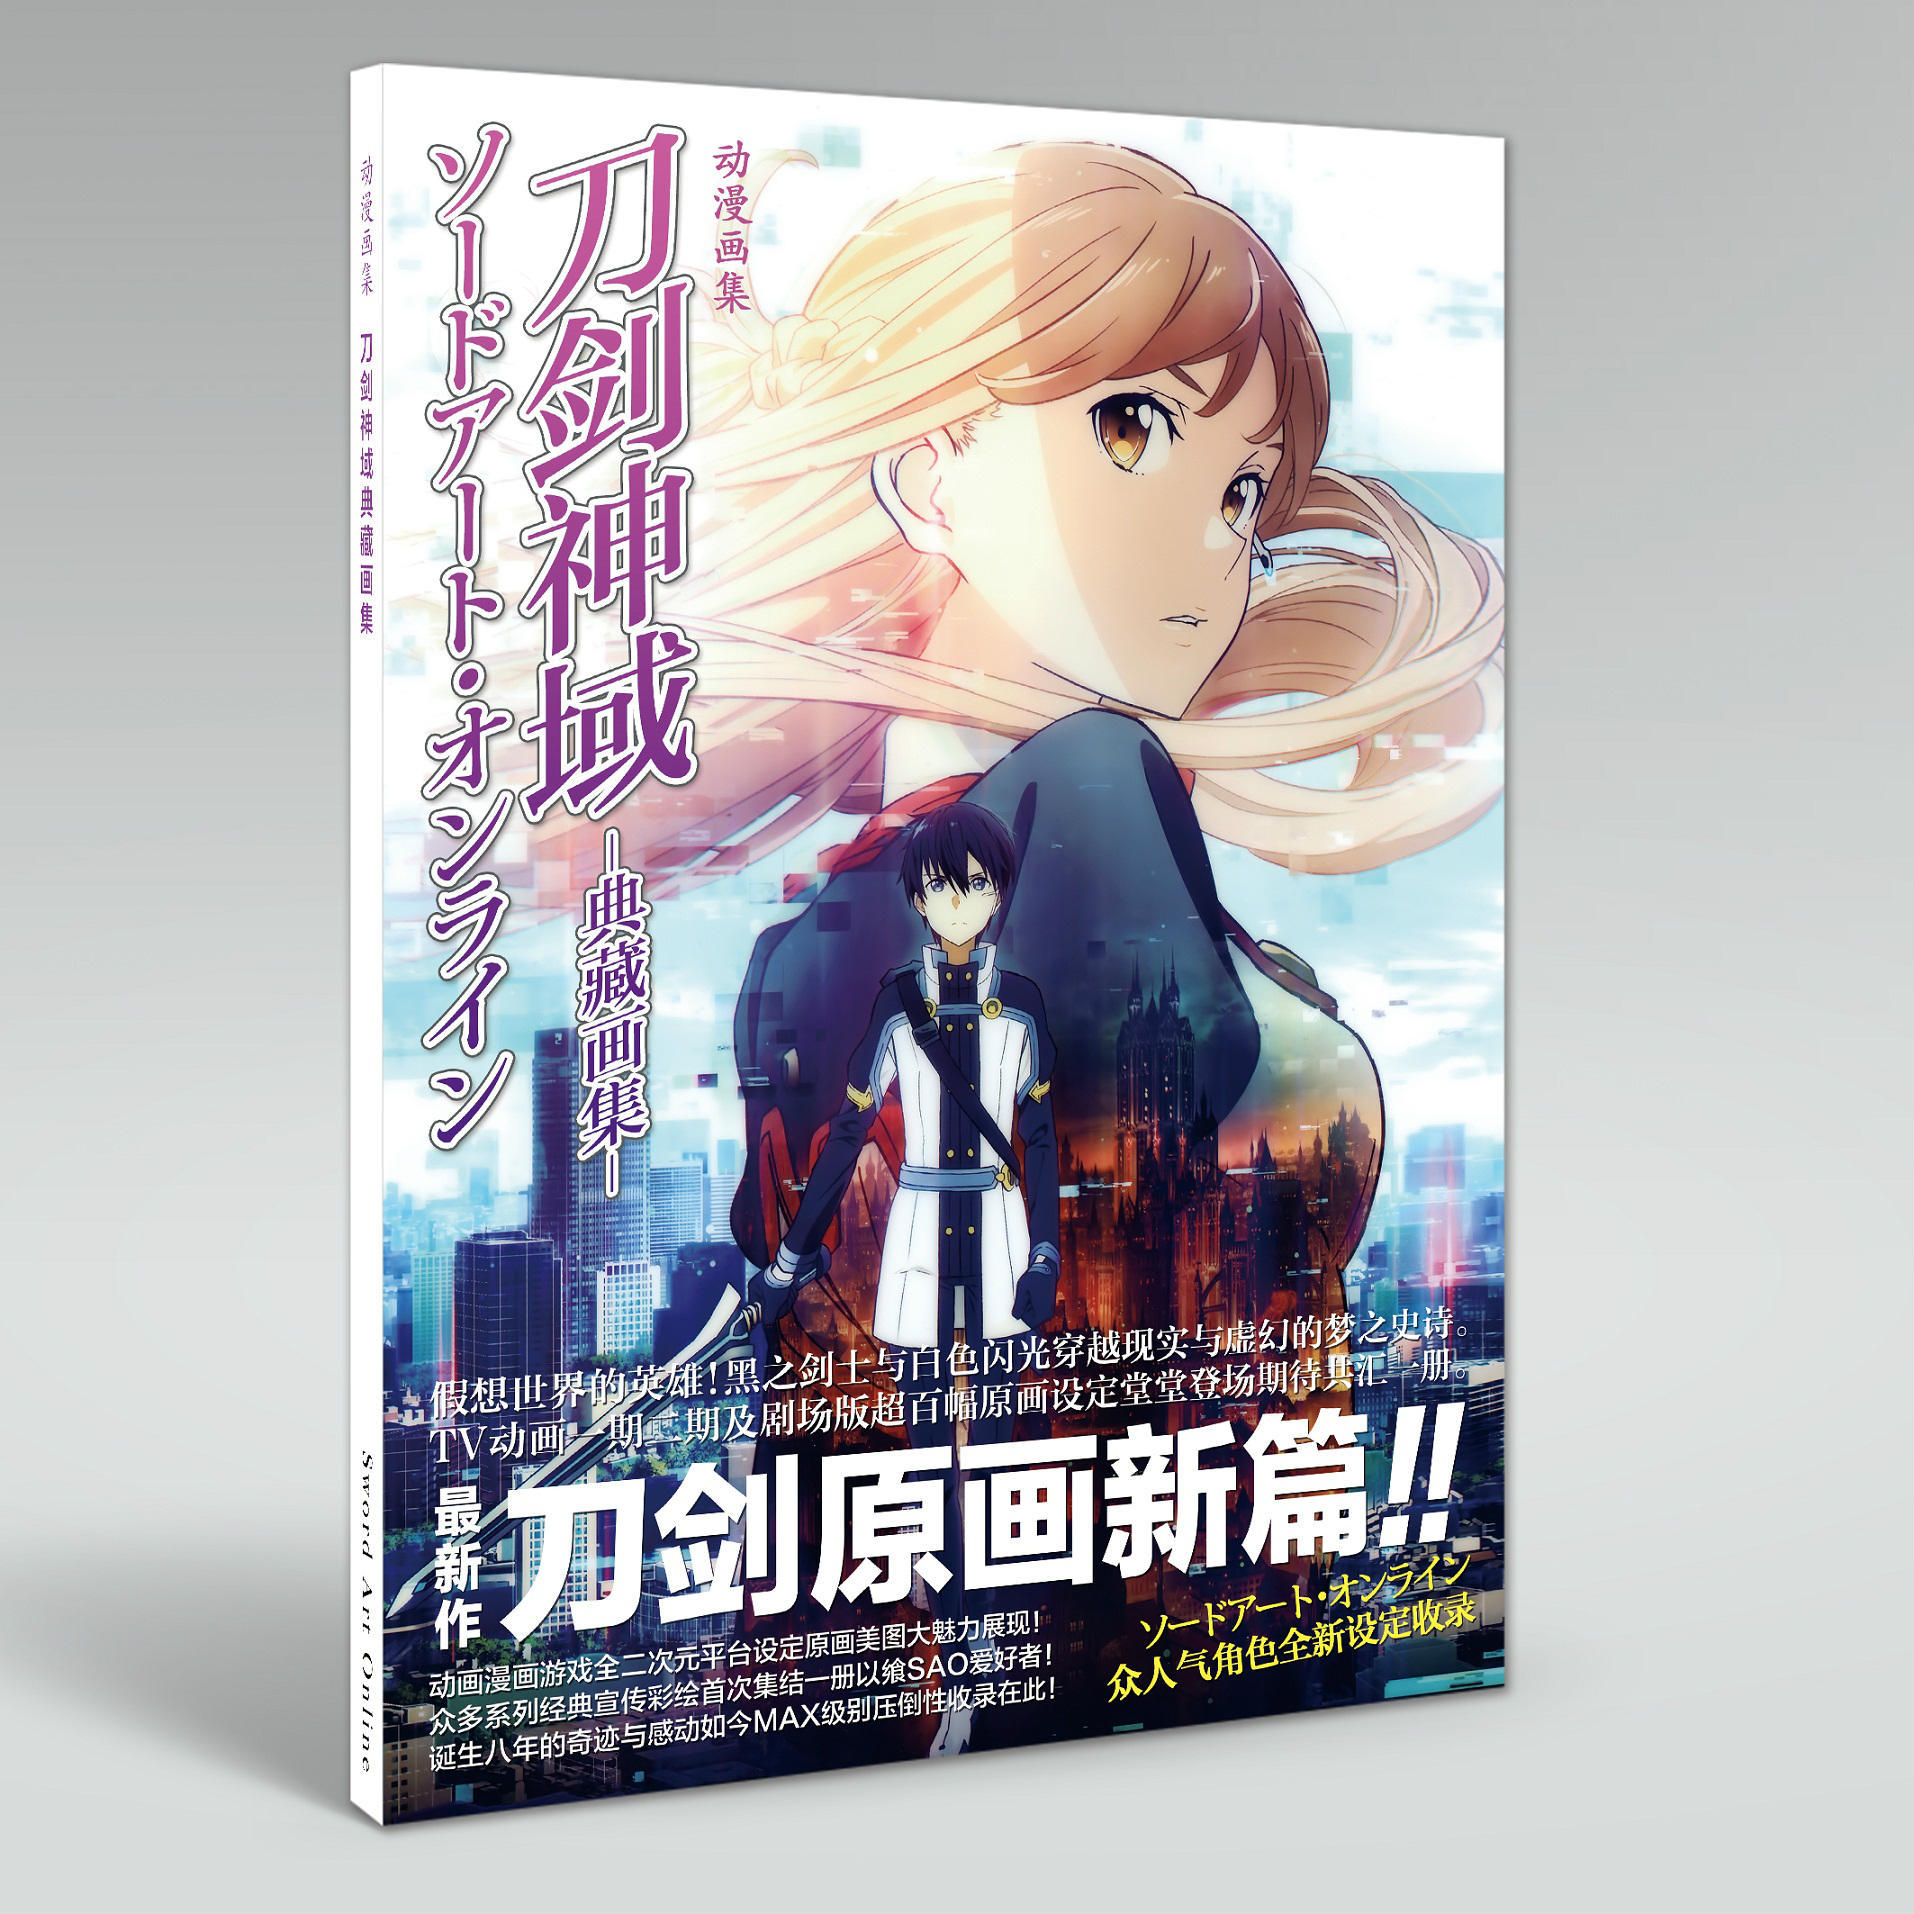 Sword Art Online SAO Colorful Book Art Book Collection Color Illustratio Paintings Anime Artbook